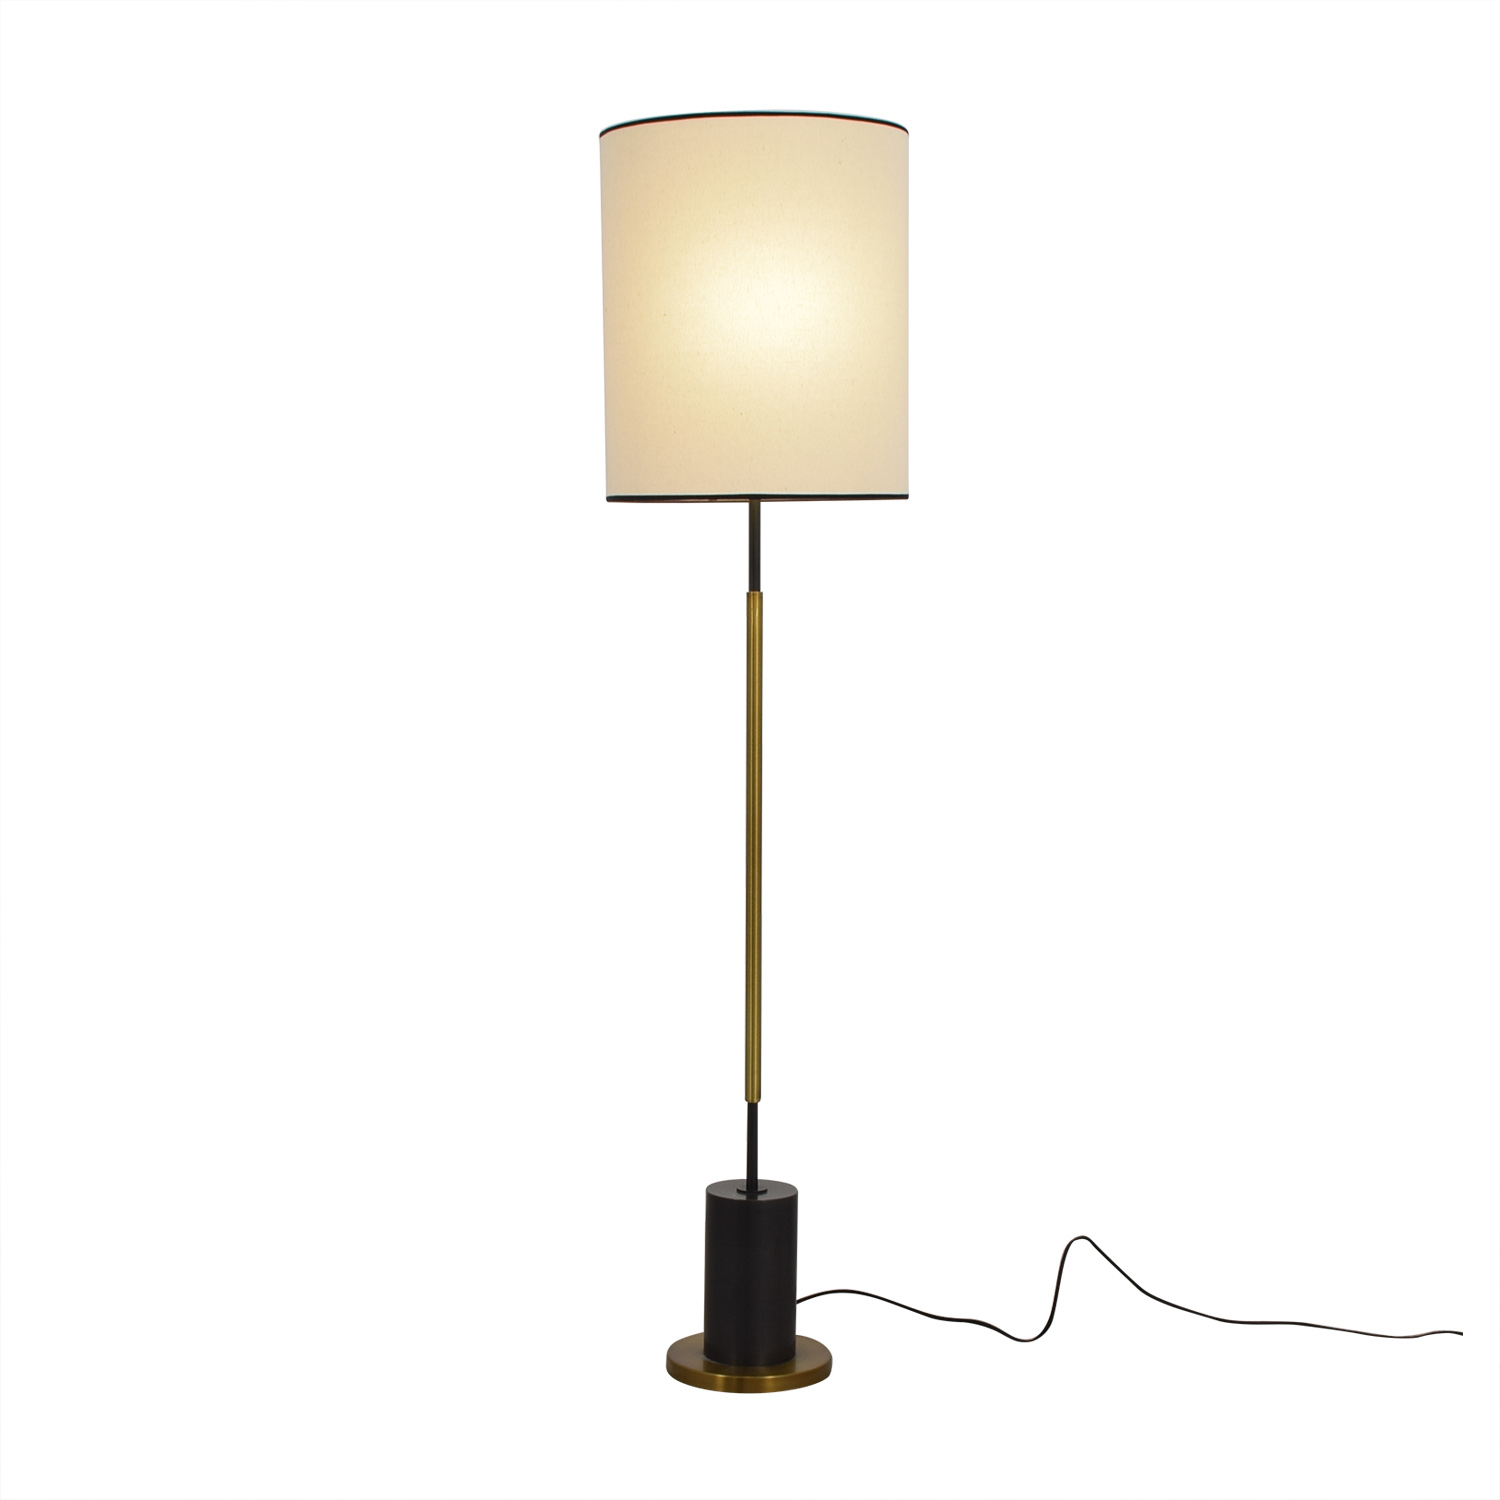 shop West Elm + Rejuvenation Cylinder Antique Brass and Linen Floor Lamp West Elm